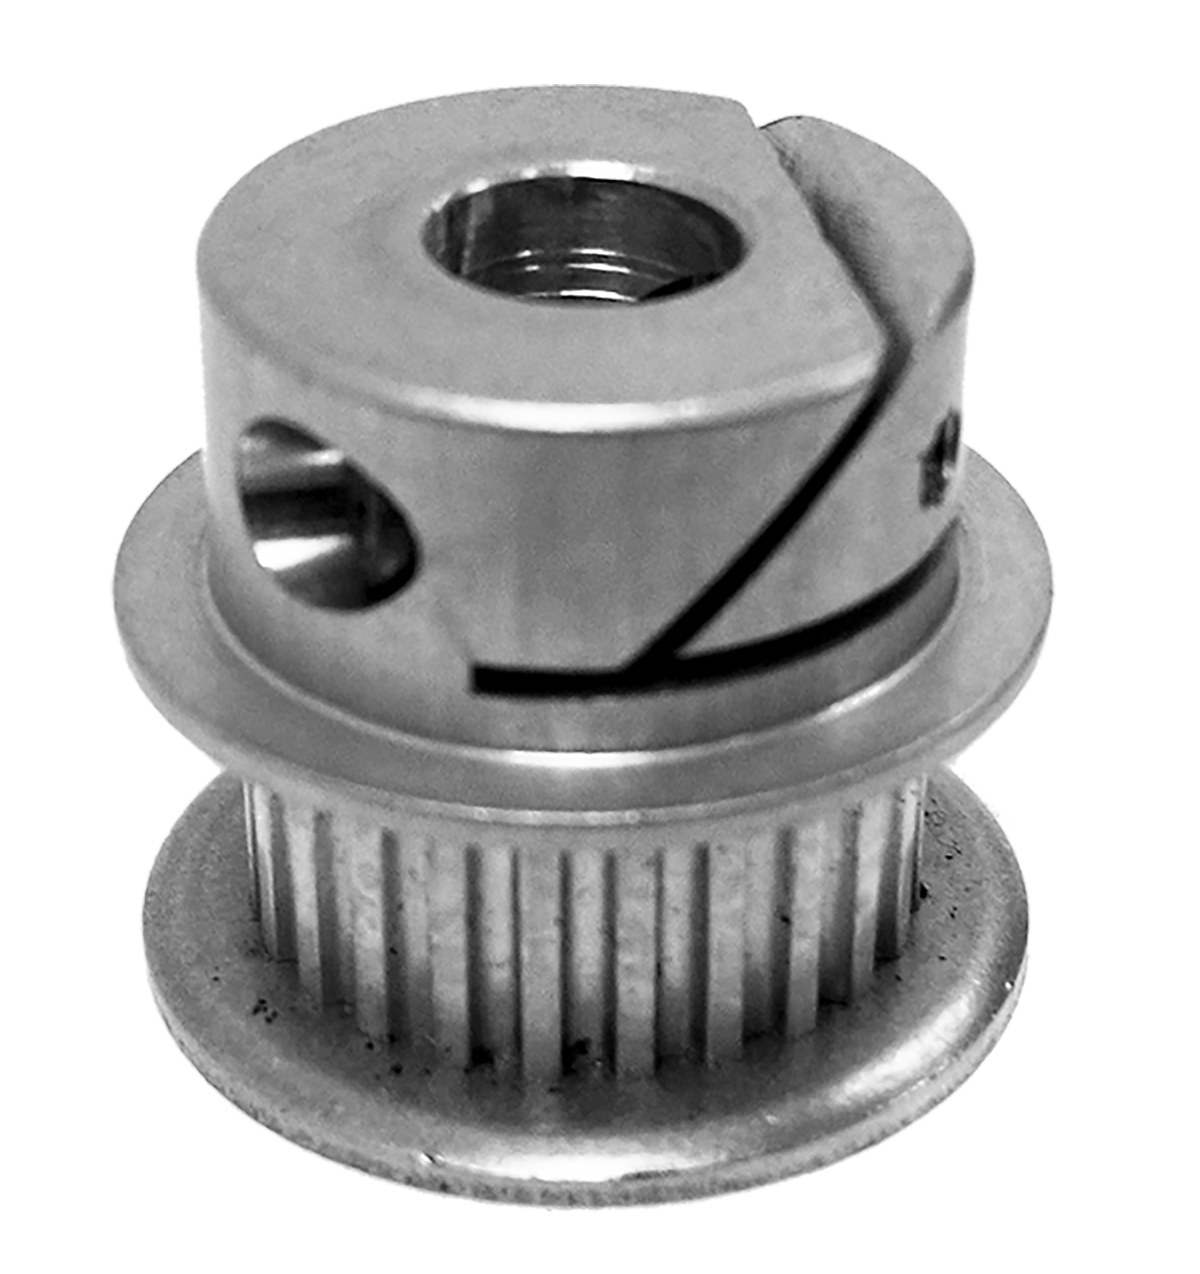 36MP025-IA3 - E-Z Lock Hub Aluminum Imperial Pitch Pulleys